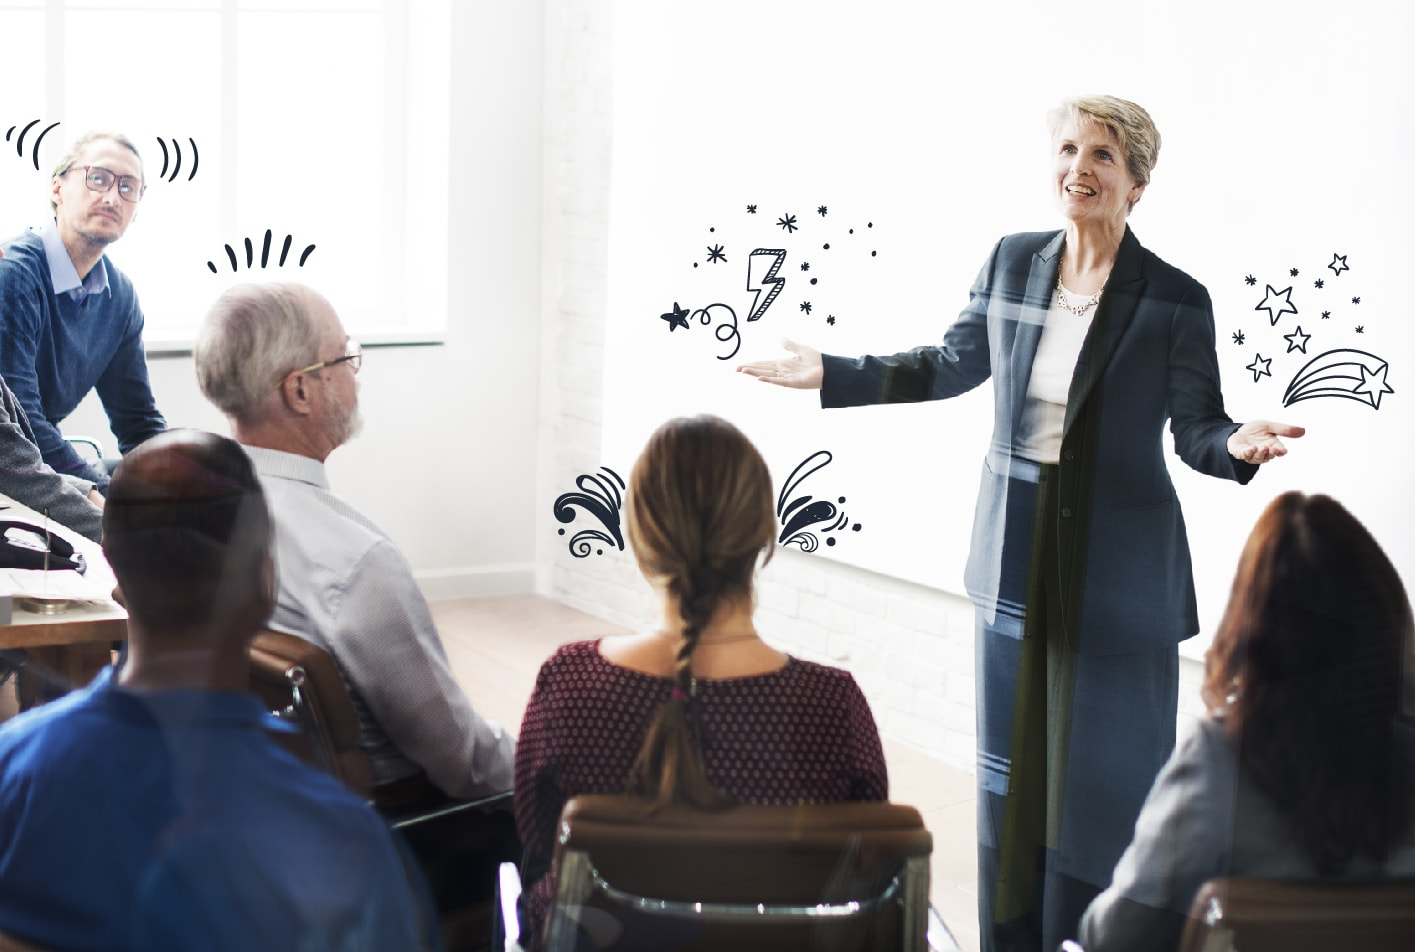 18 sales presentation tips from sales experts and influencers